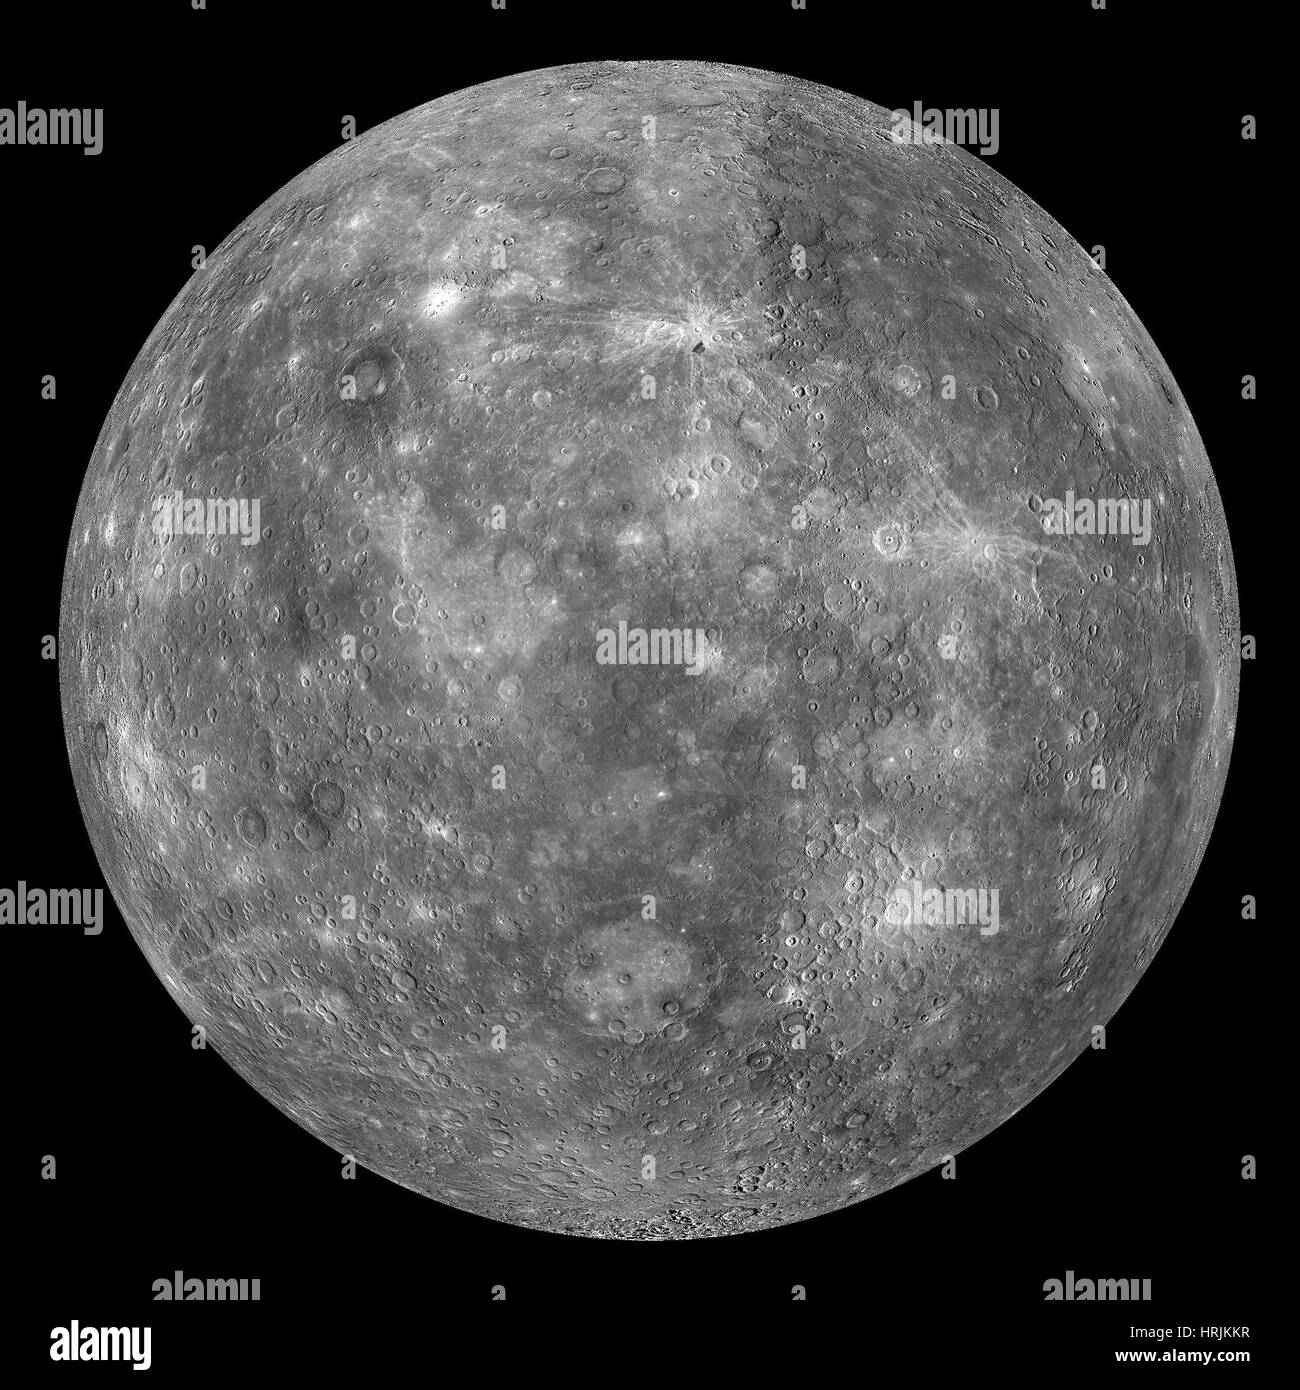 Mercury, MESSENGER Image, 2008 - Stock Image